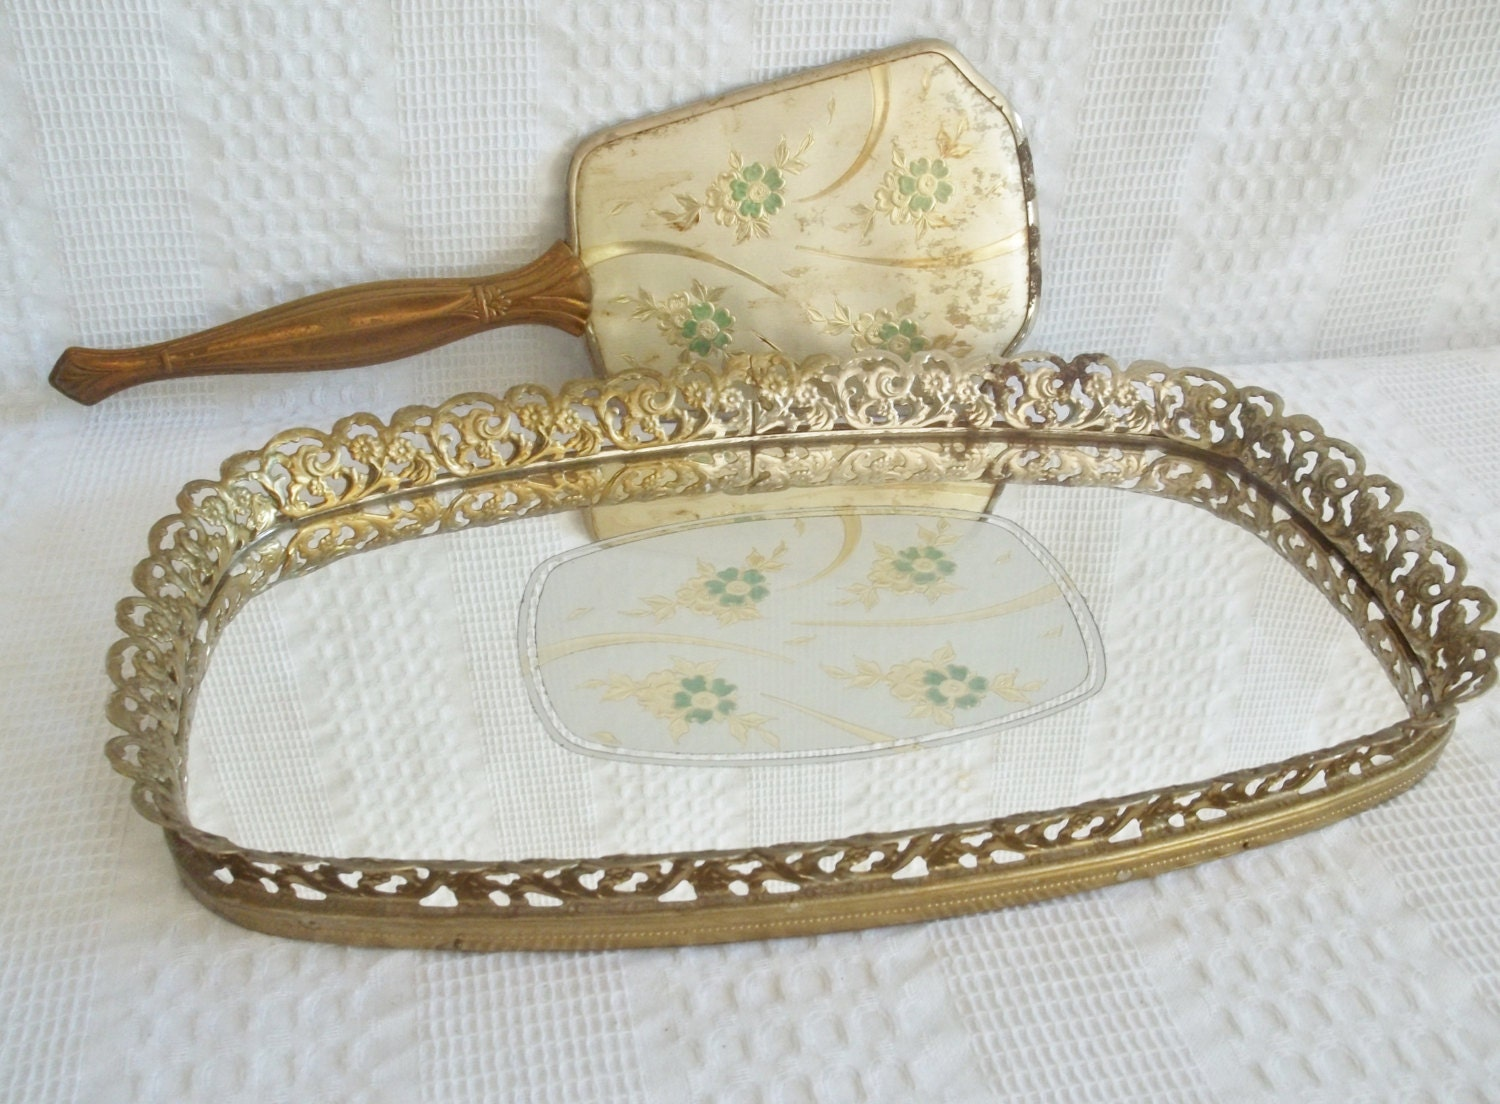 Large mirrored tray vanity mirror tray gold jade green for Mirrored bathroom tray